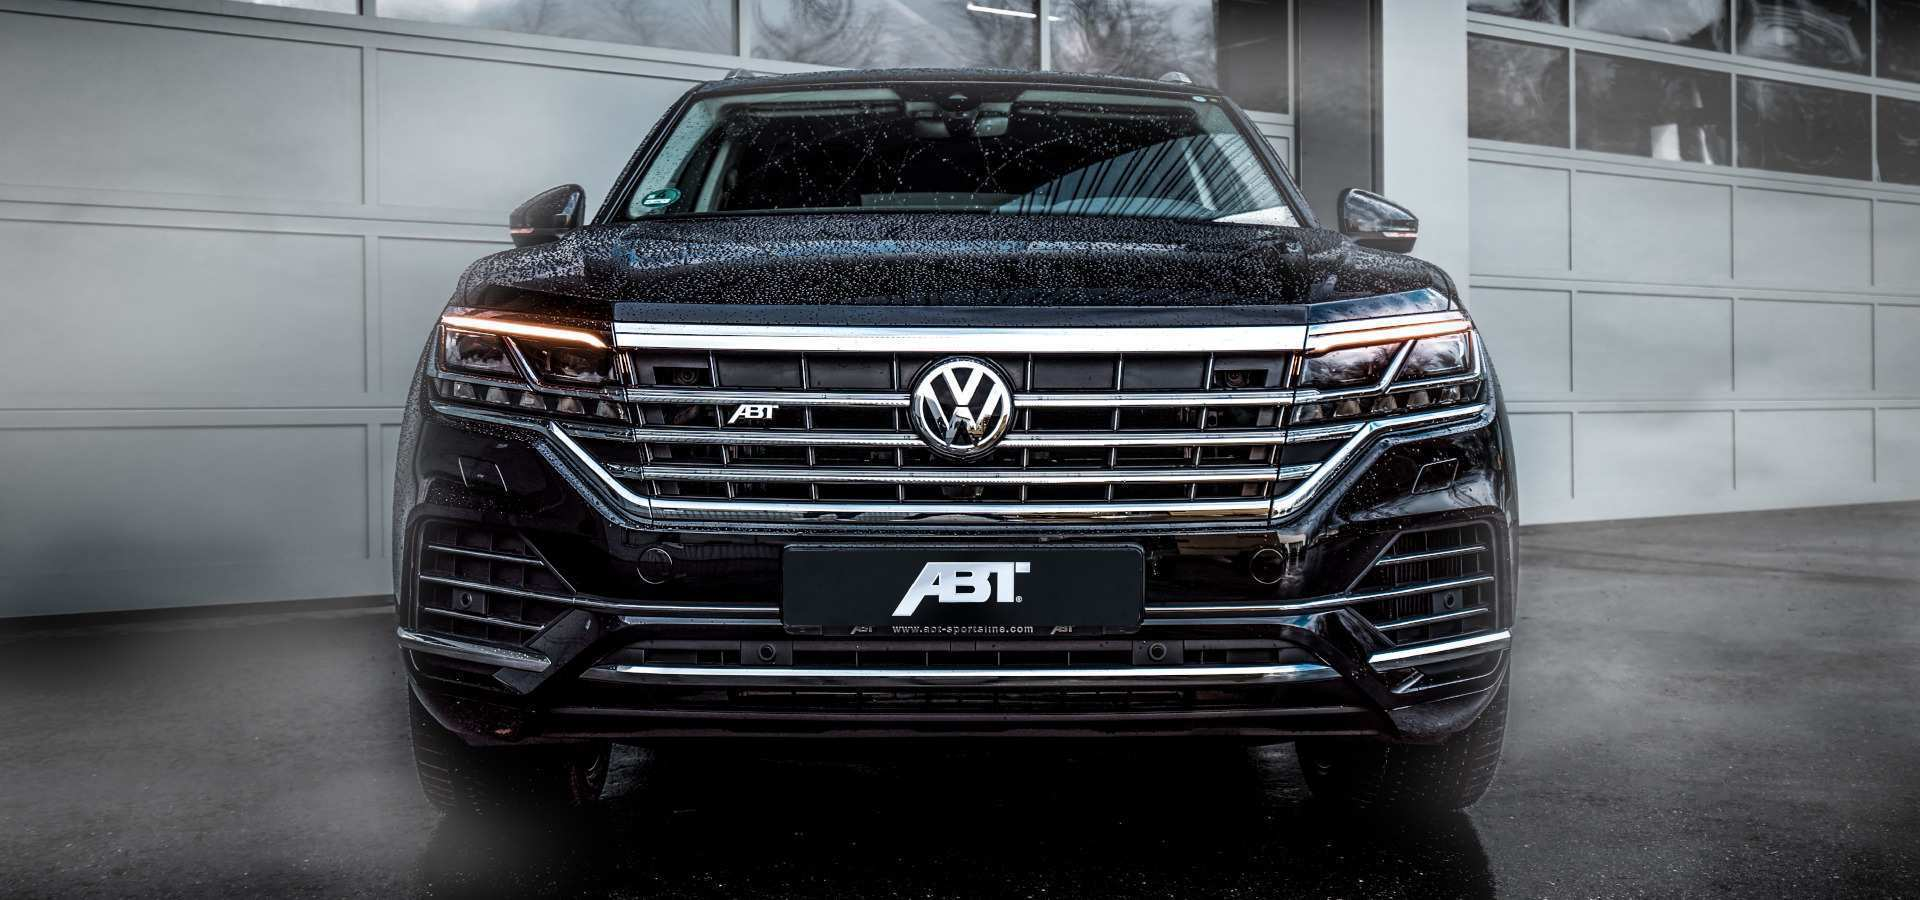 81 The 2019 Vw Touareg Tdi Redesign